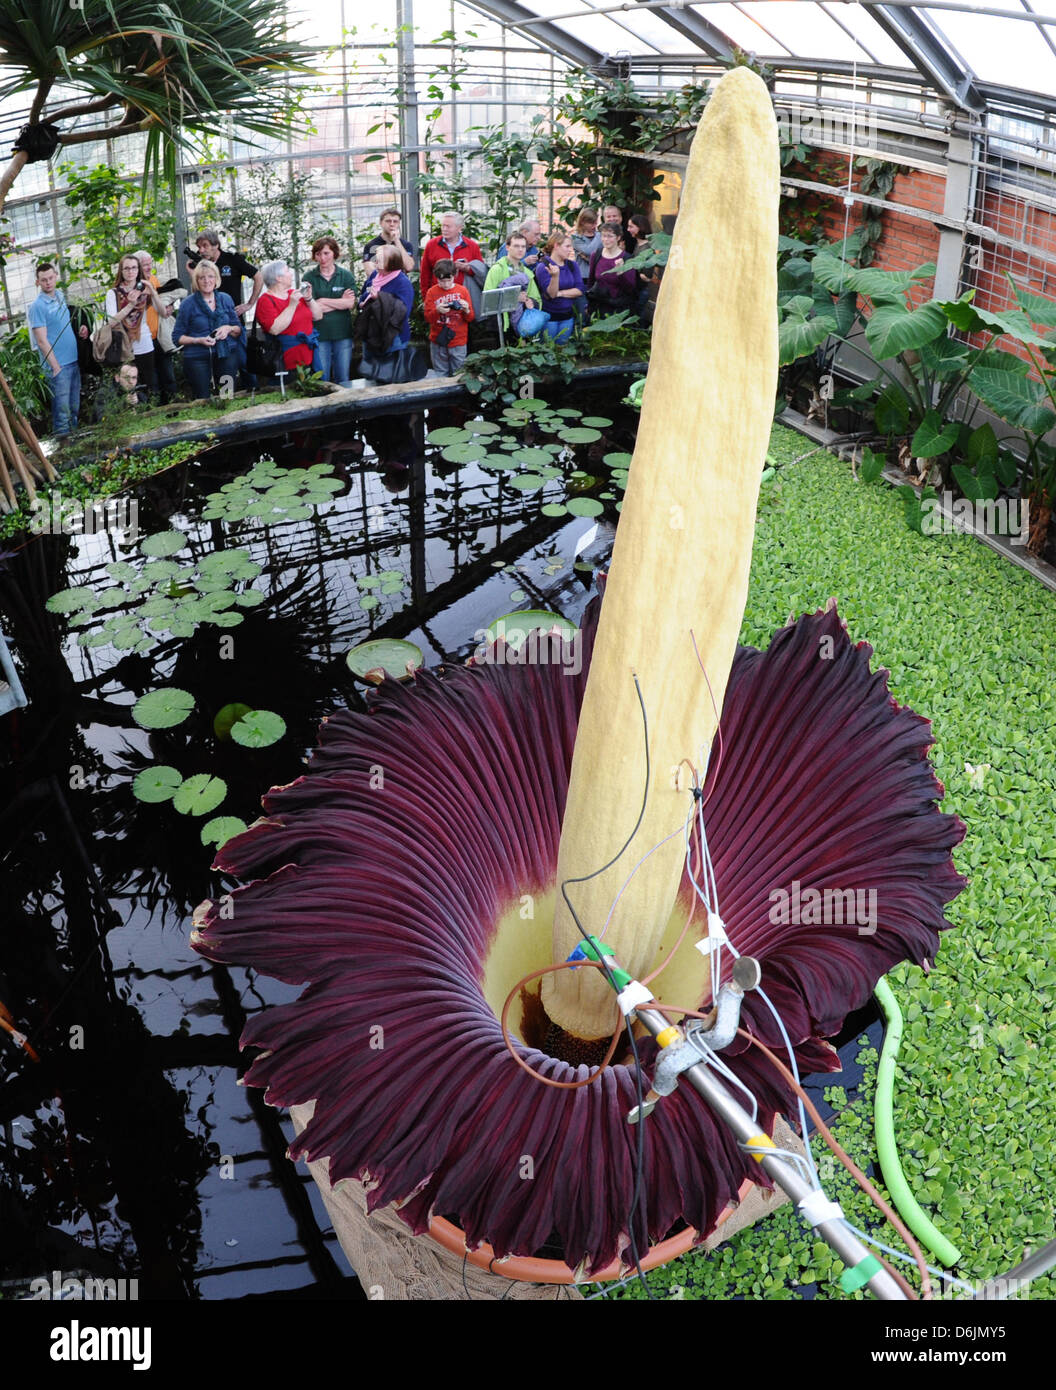 A titan arum or corpse flower blossoms at the botanic gardens in St